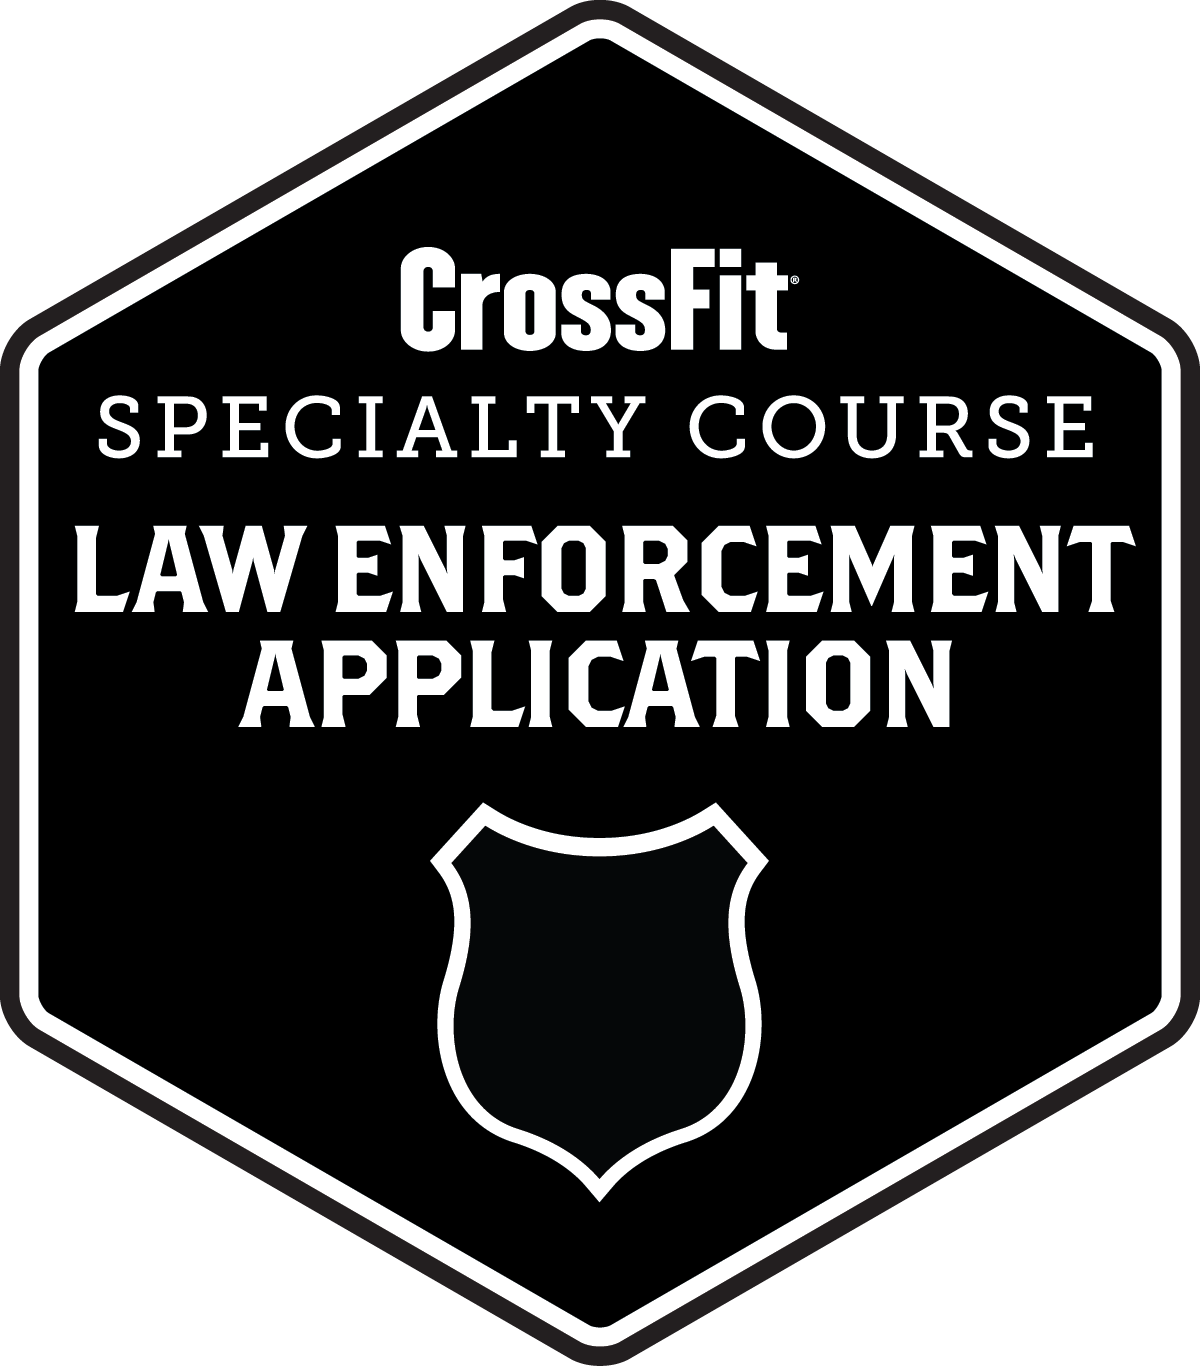 Law enforcement applications